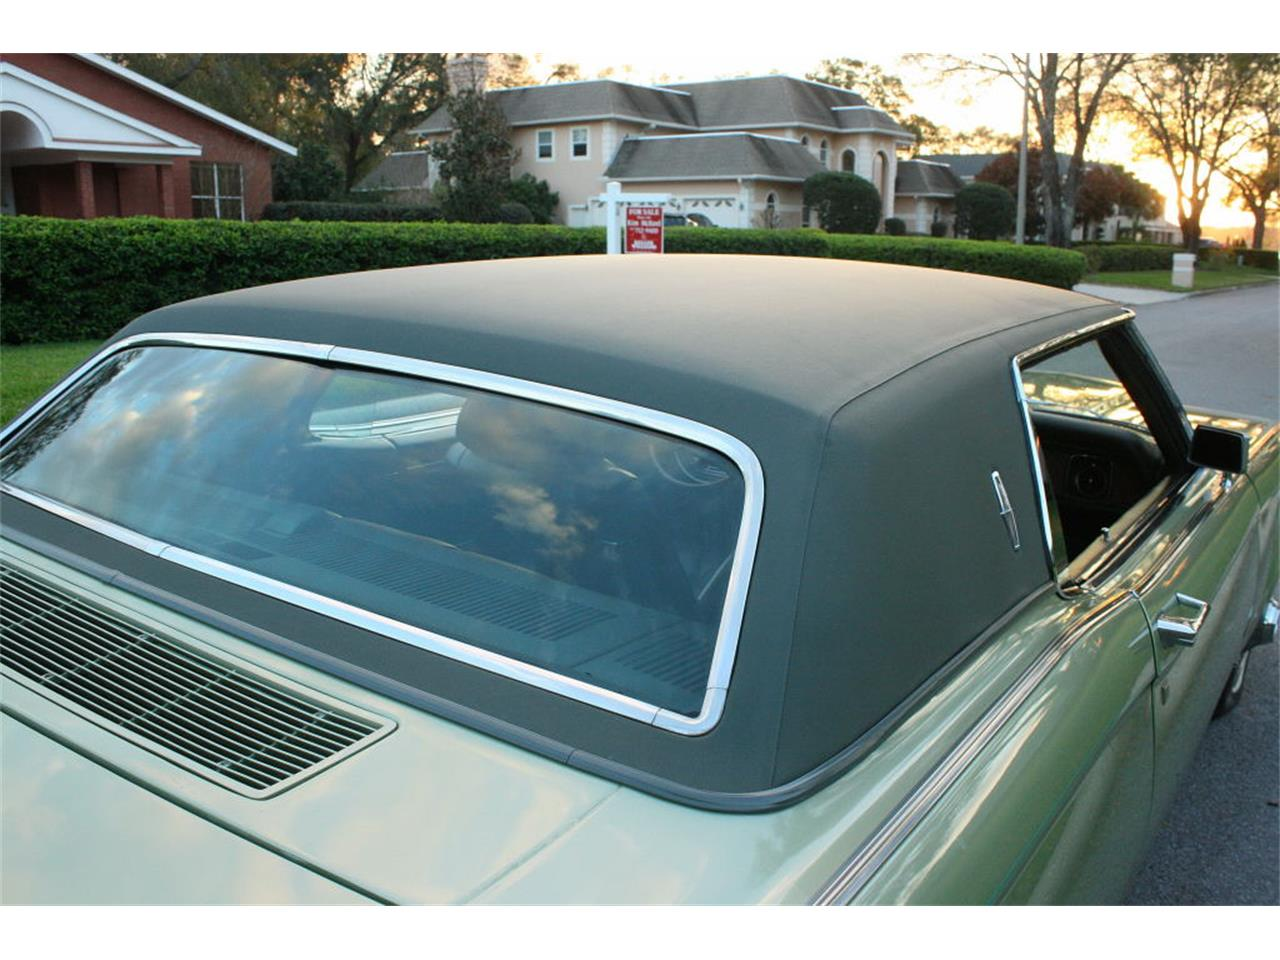 Large Picture of 1969 Continental Mark III located in Lakeland Florida - $24,500.00 Offered by MJC Classic Cars - OPDW